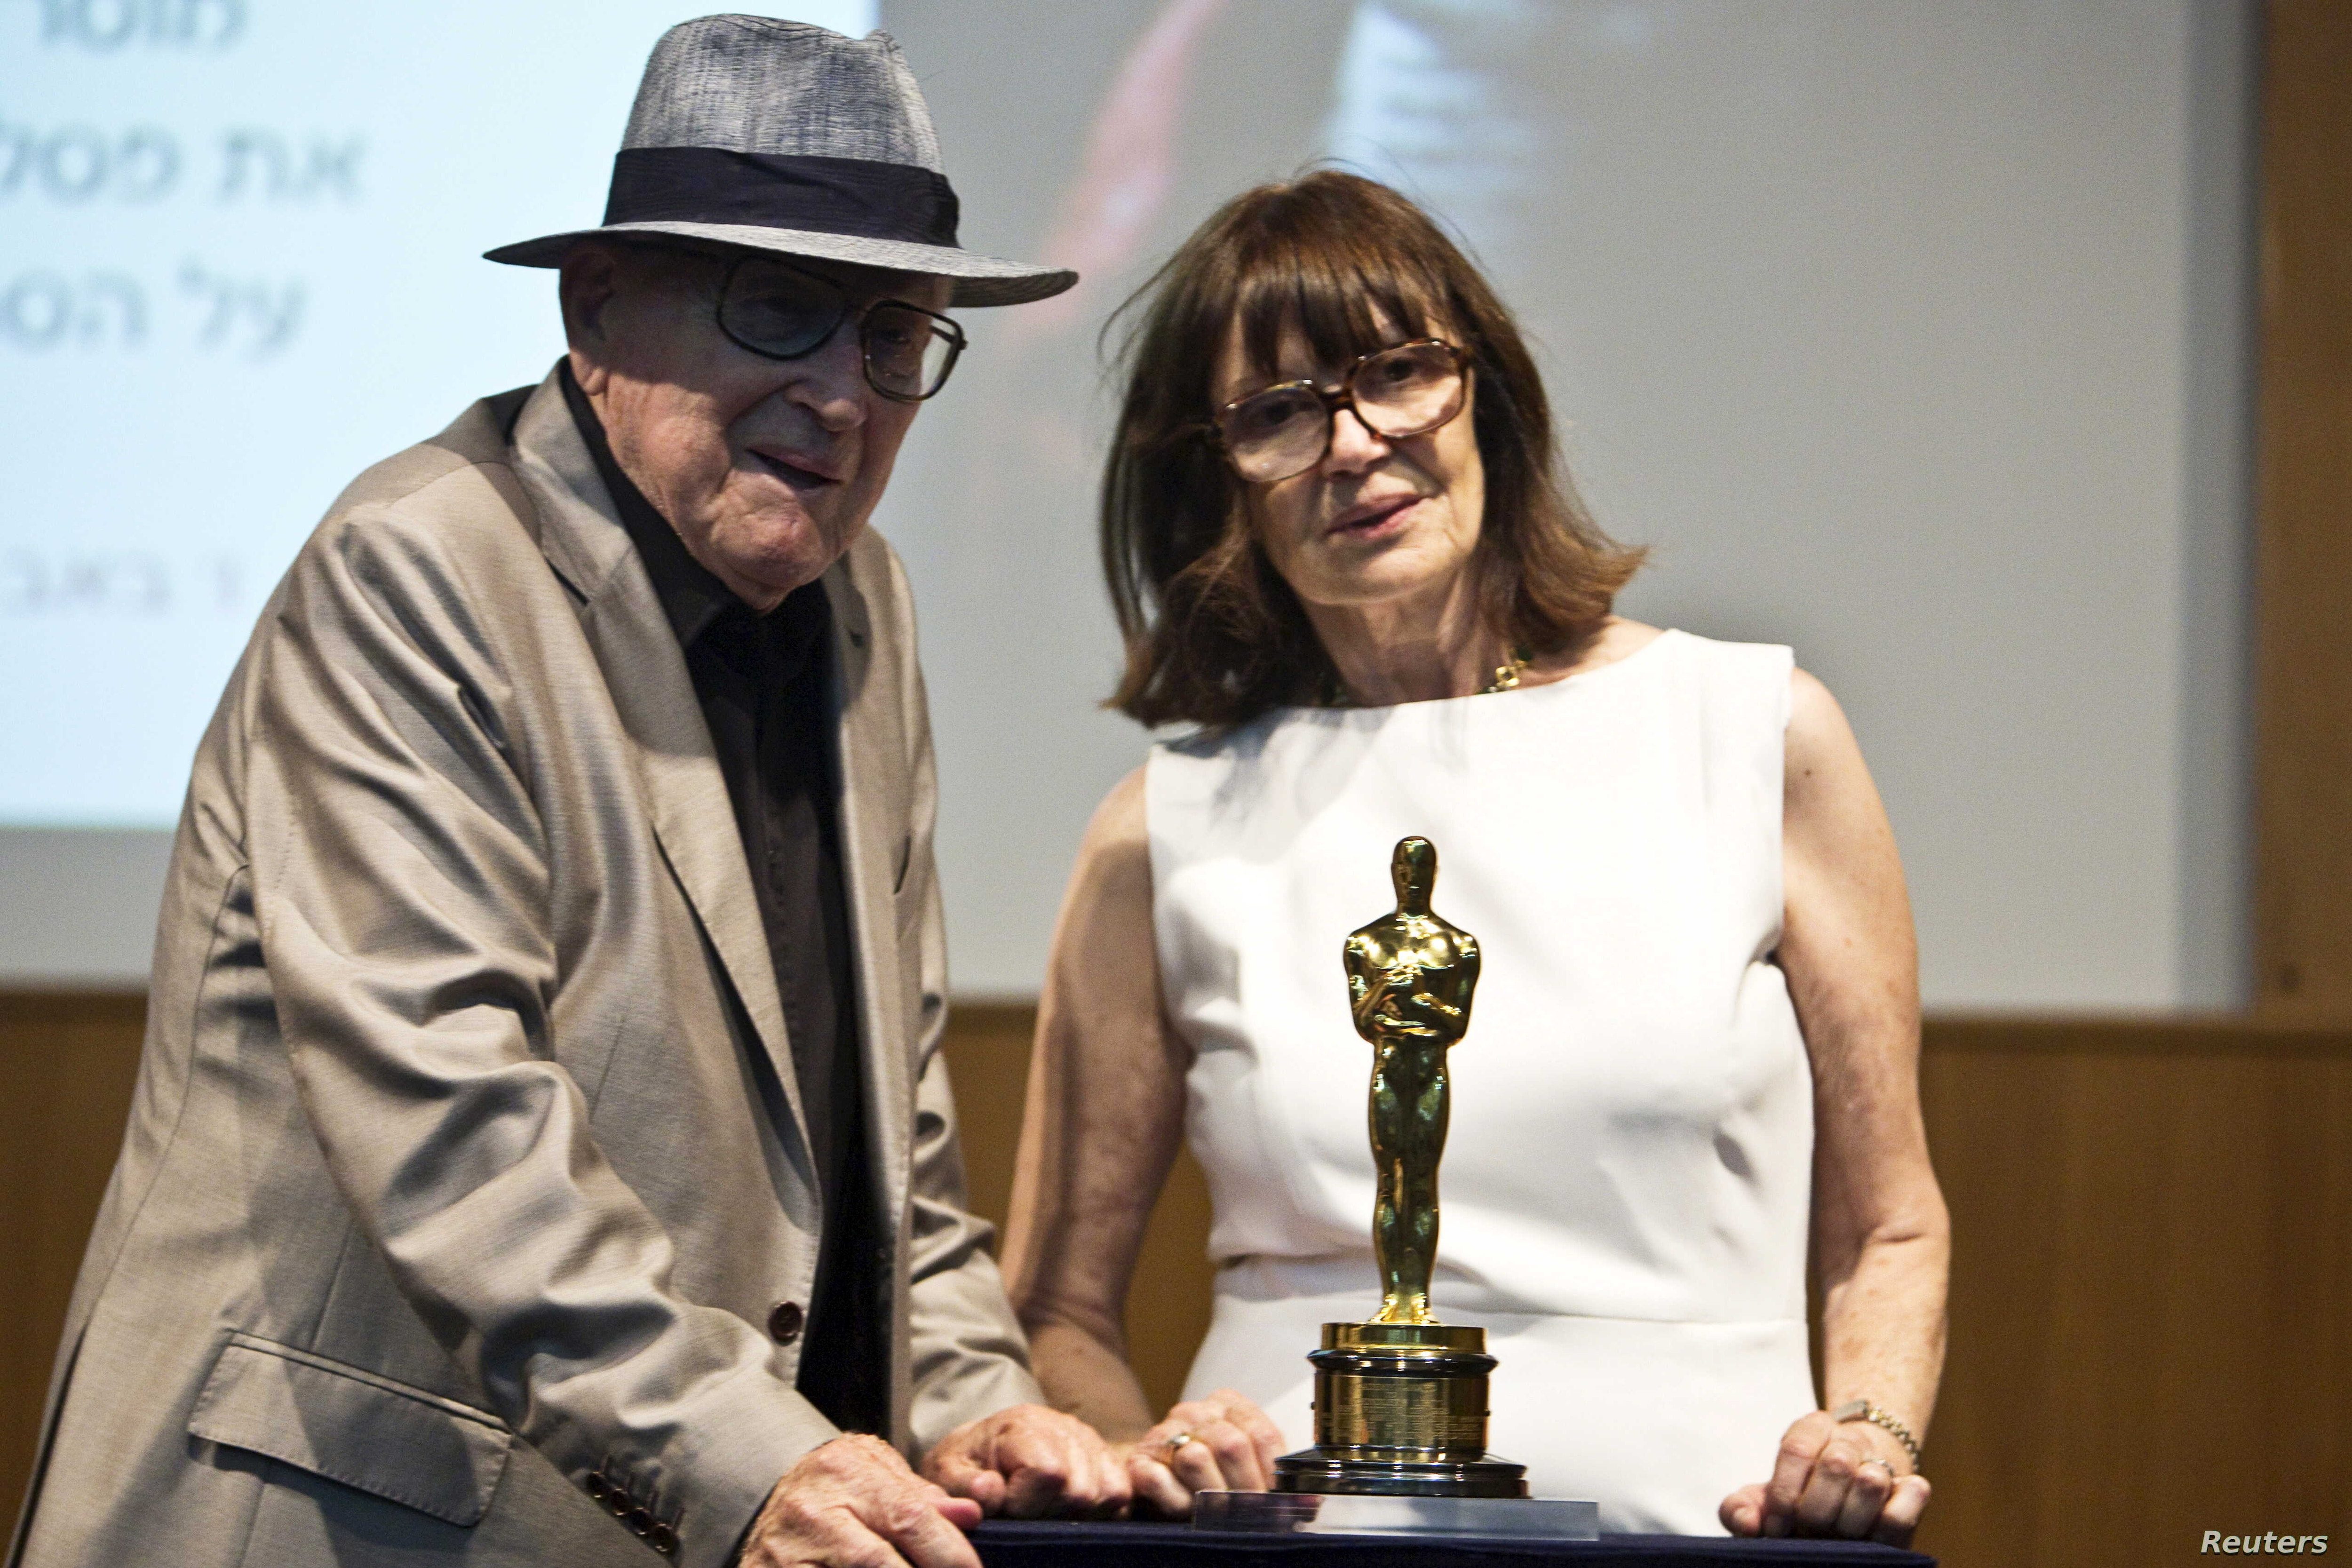 Schindler S List Producer Presents Oscar To Yad Vashem Memorial Voice Of America English